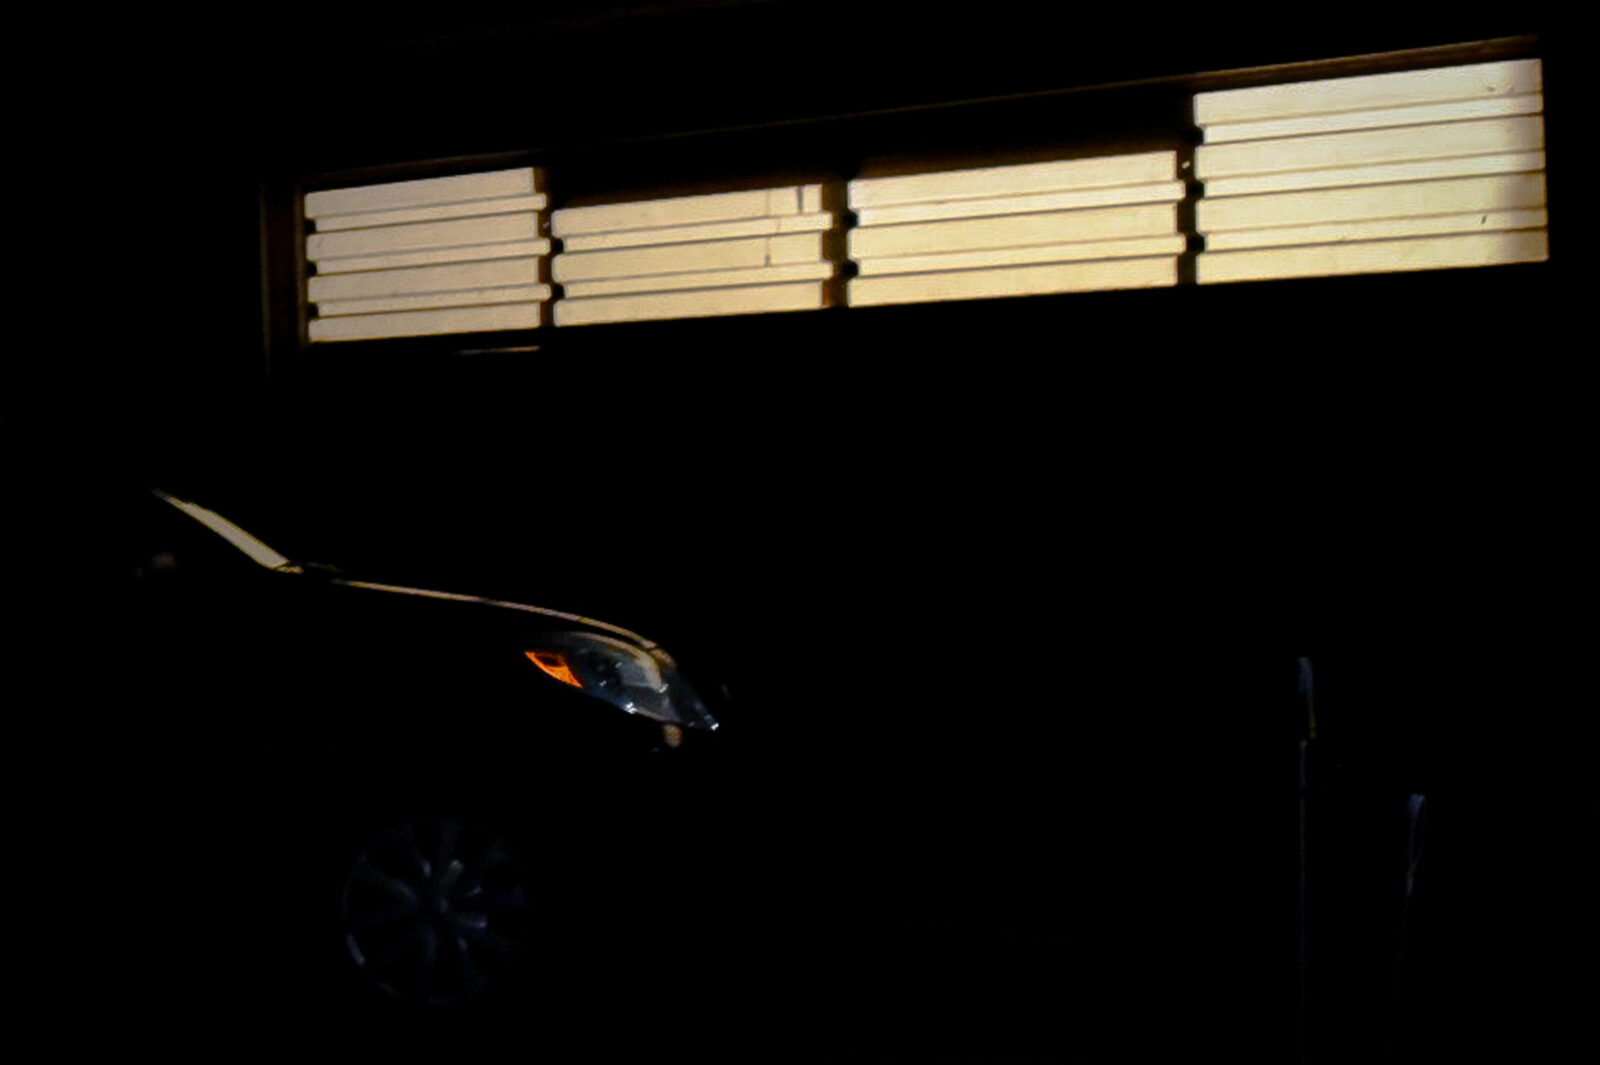 a car parked in front of garage door at night